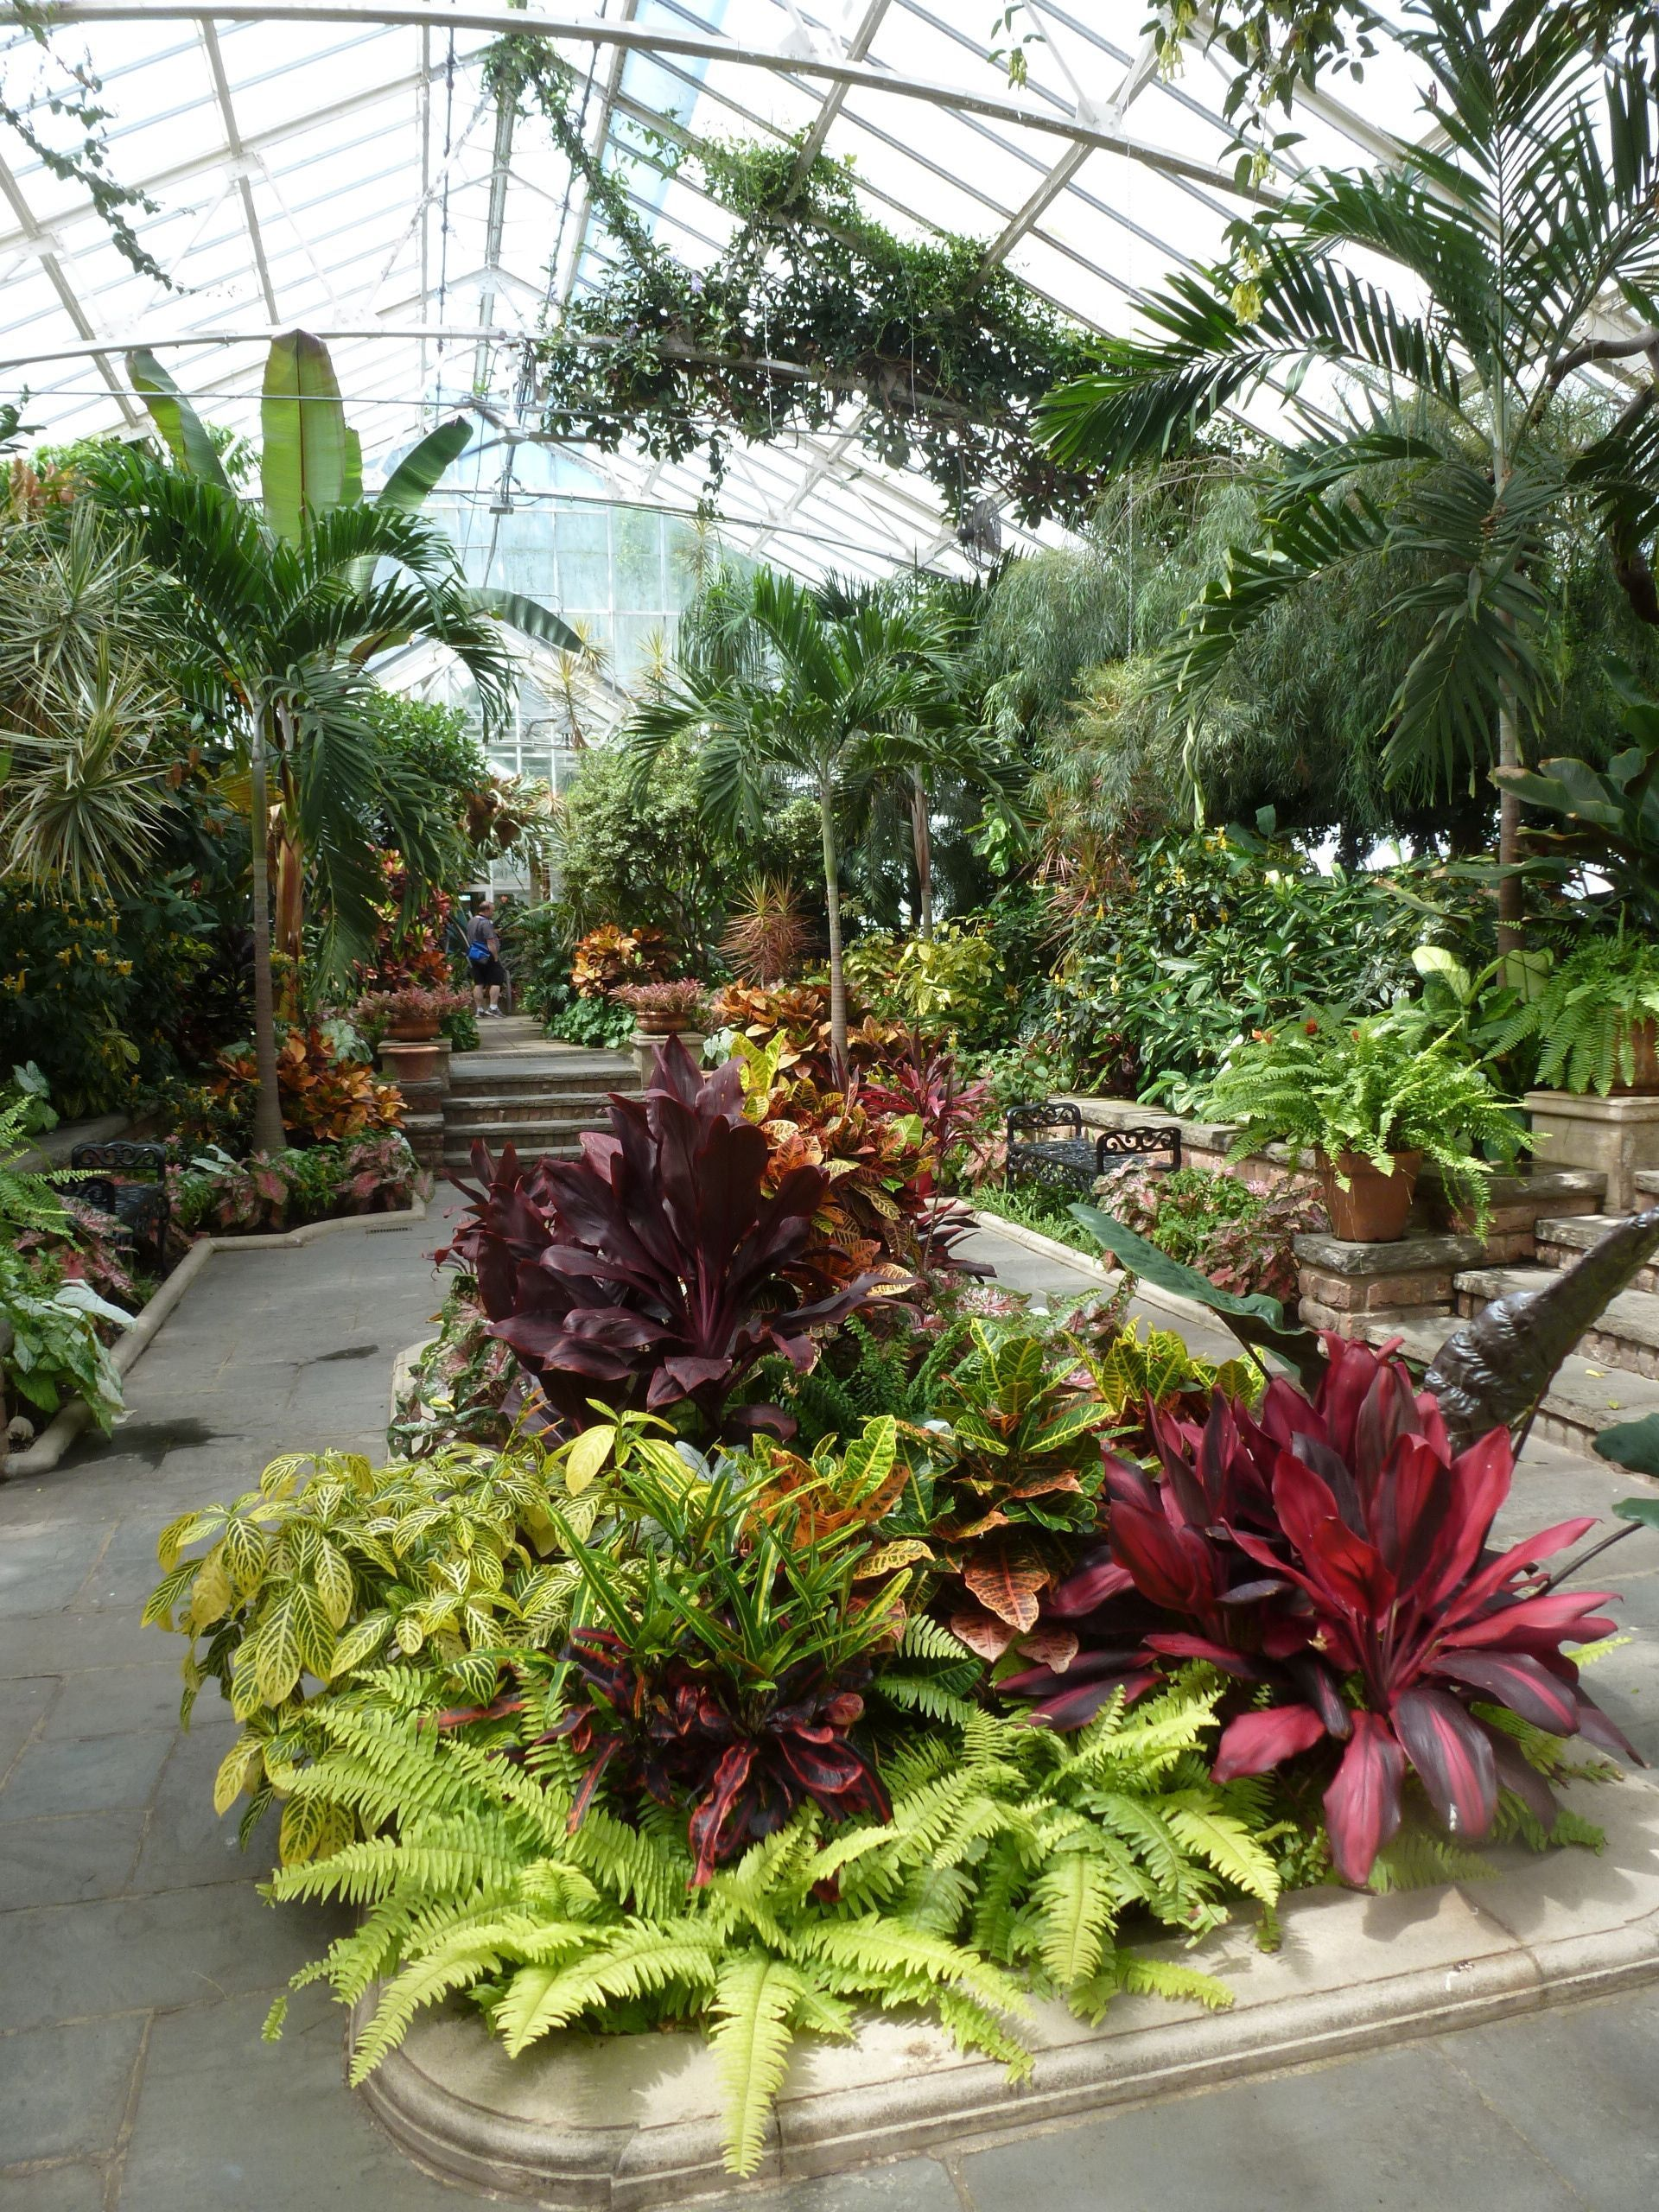 Find And Enjoy Beautiful Public Gardens On Long Island With This